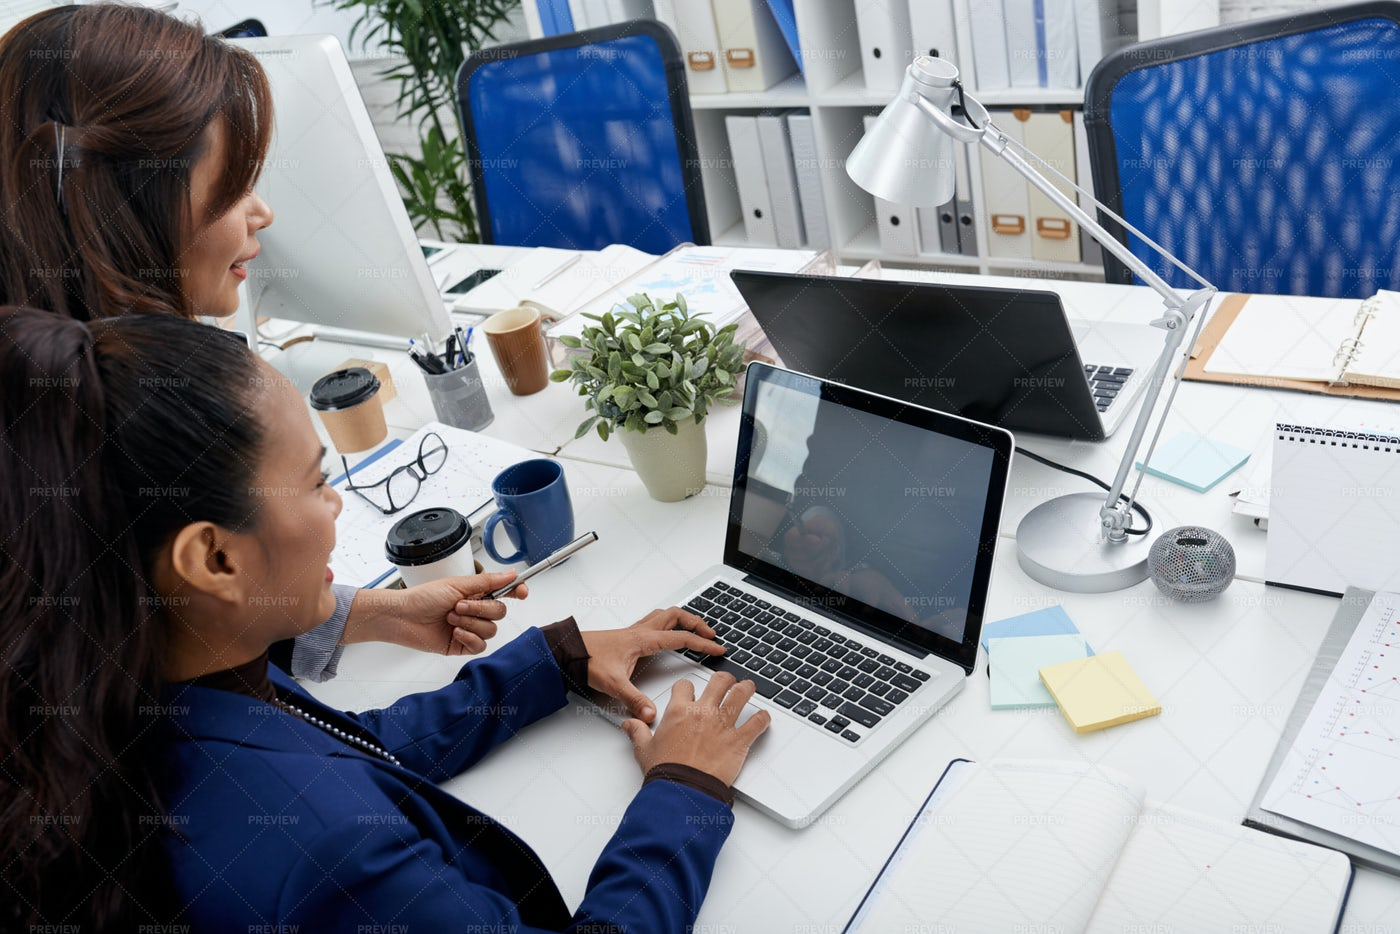 Helping With Work: Stock Photos